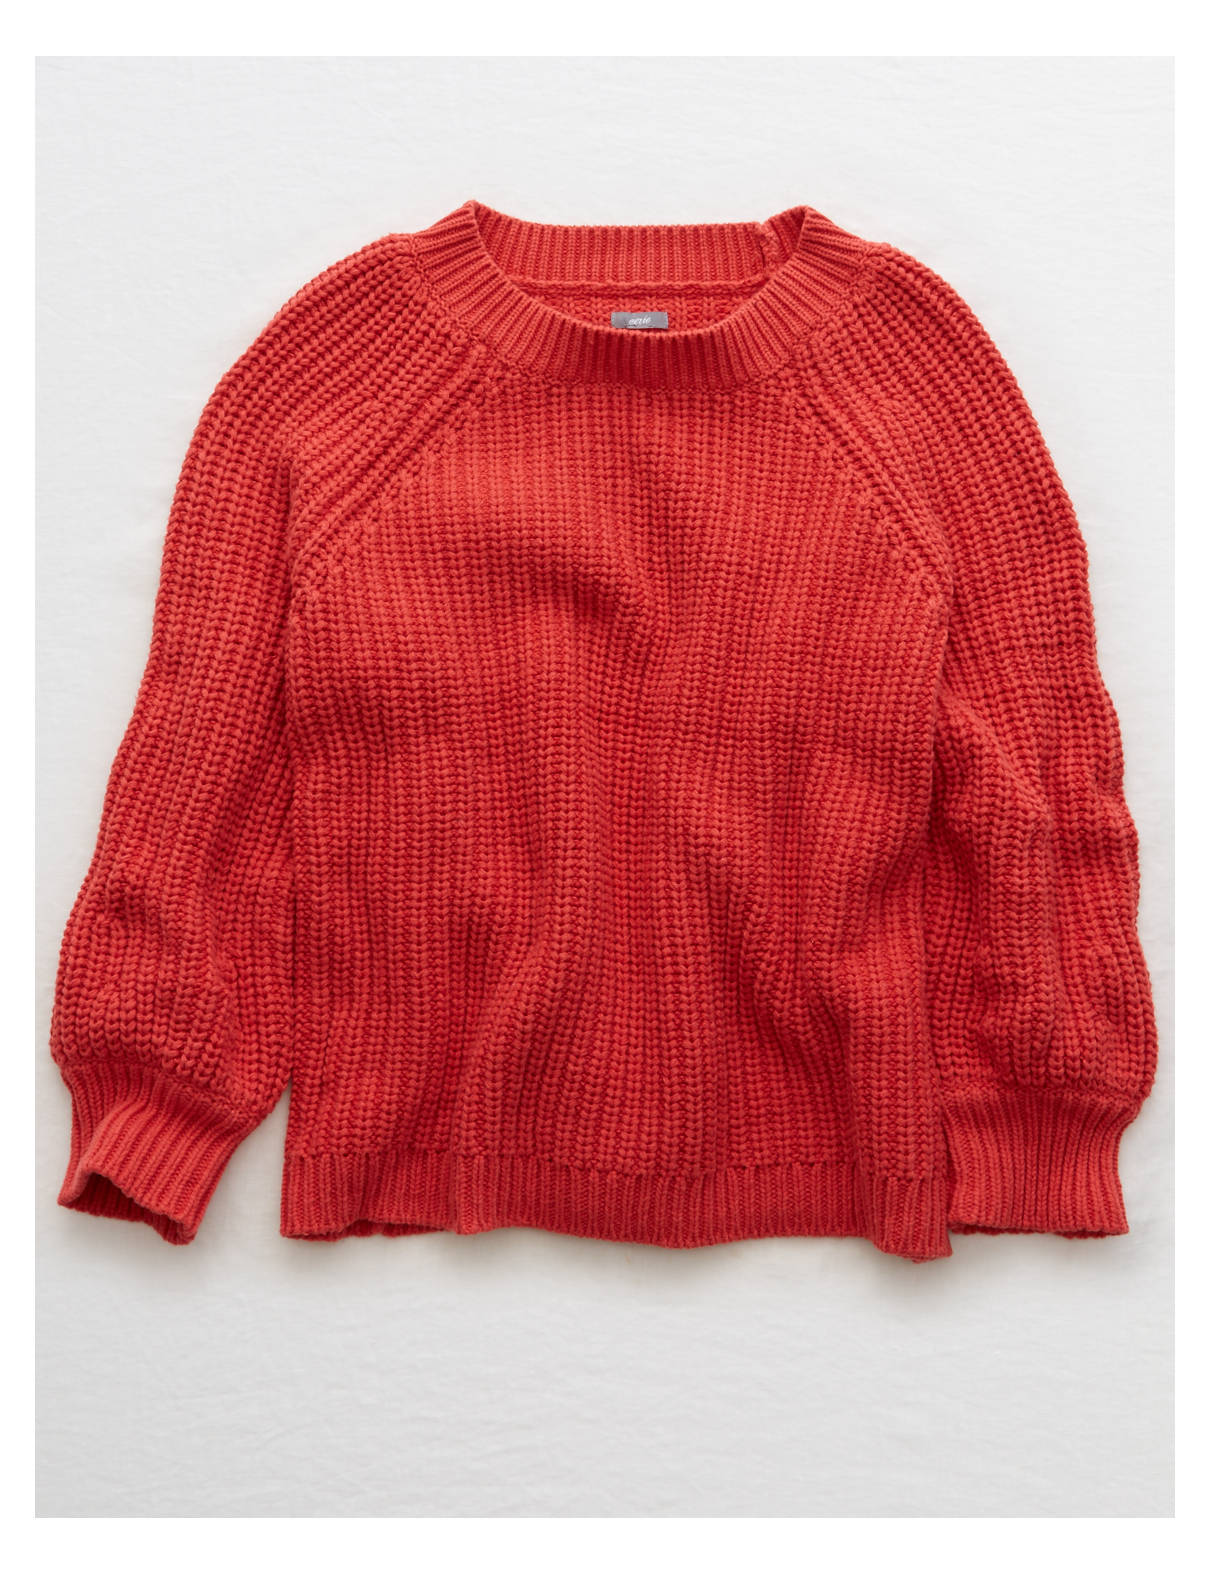 Aerie Pullover Sweater, Natural | Aerie for American Eagle